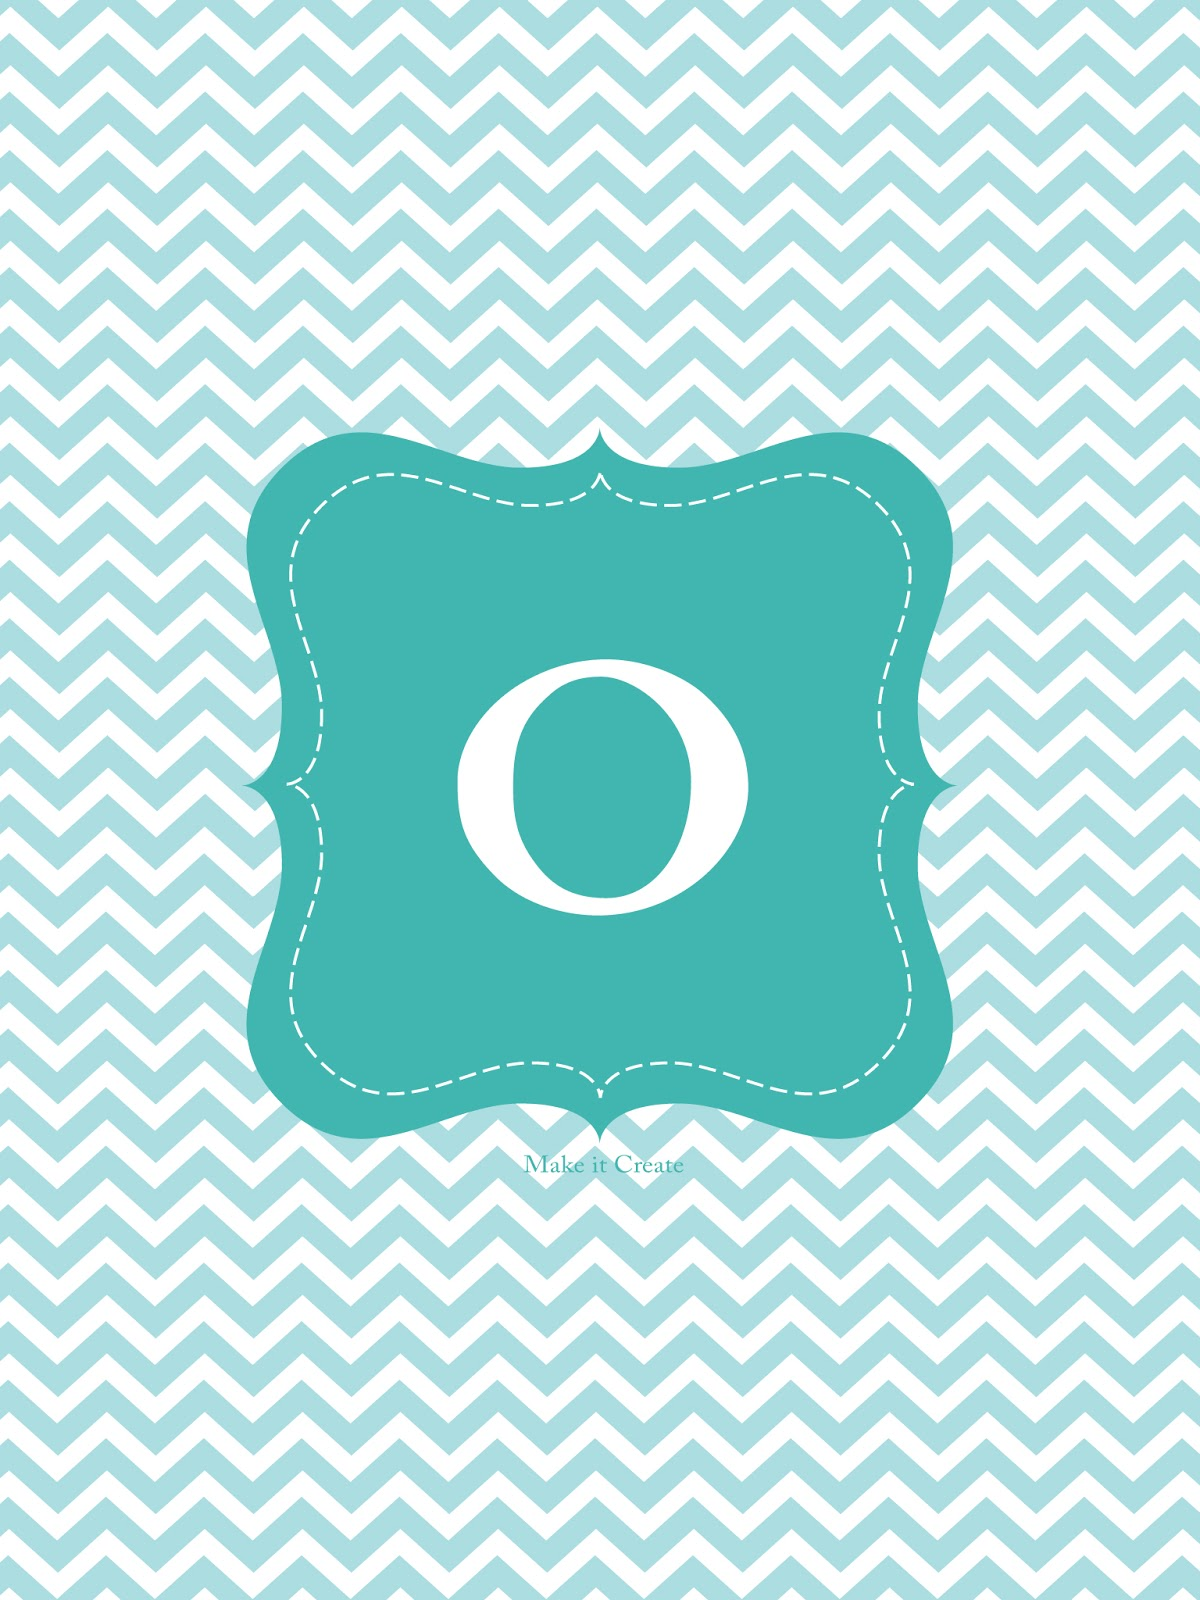 Cute Initial Wallpaper Make It Create Printables Amp Backgrounds Wallpapers